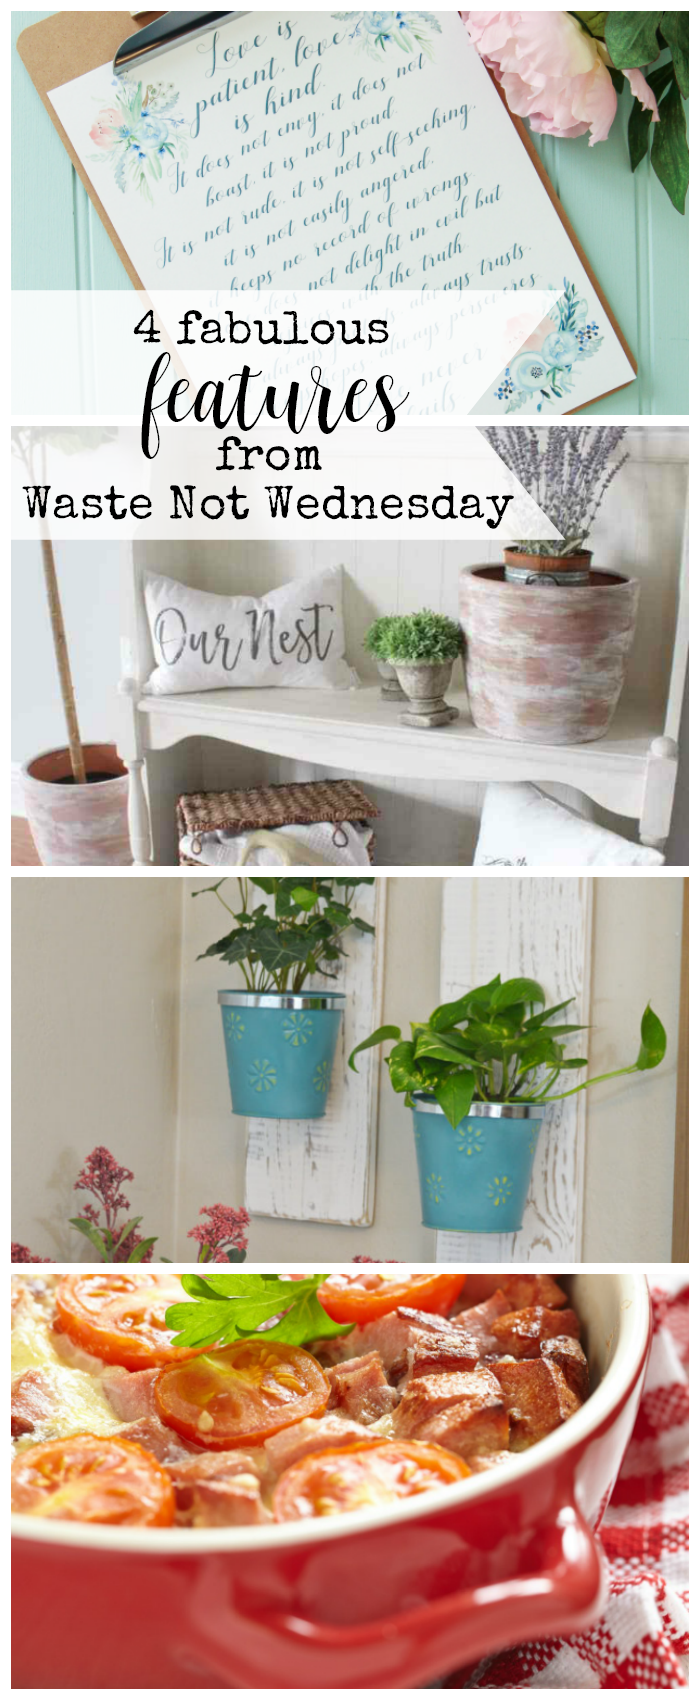 Features from our fun Waste Not Wednesday-90 DIY, Craft, Home Decor and Recipe party this week! Be sure to join us and share your DIY, Craft, Home Decor and favourite recipes! | www.raggedy-bits.com | www.mythriftyhouse.com | www.salvagesisterandmister.com | #WasteNotWednesday #DIY #HomeDecor #Craft #Recipes